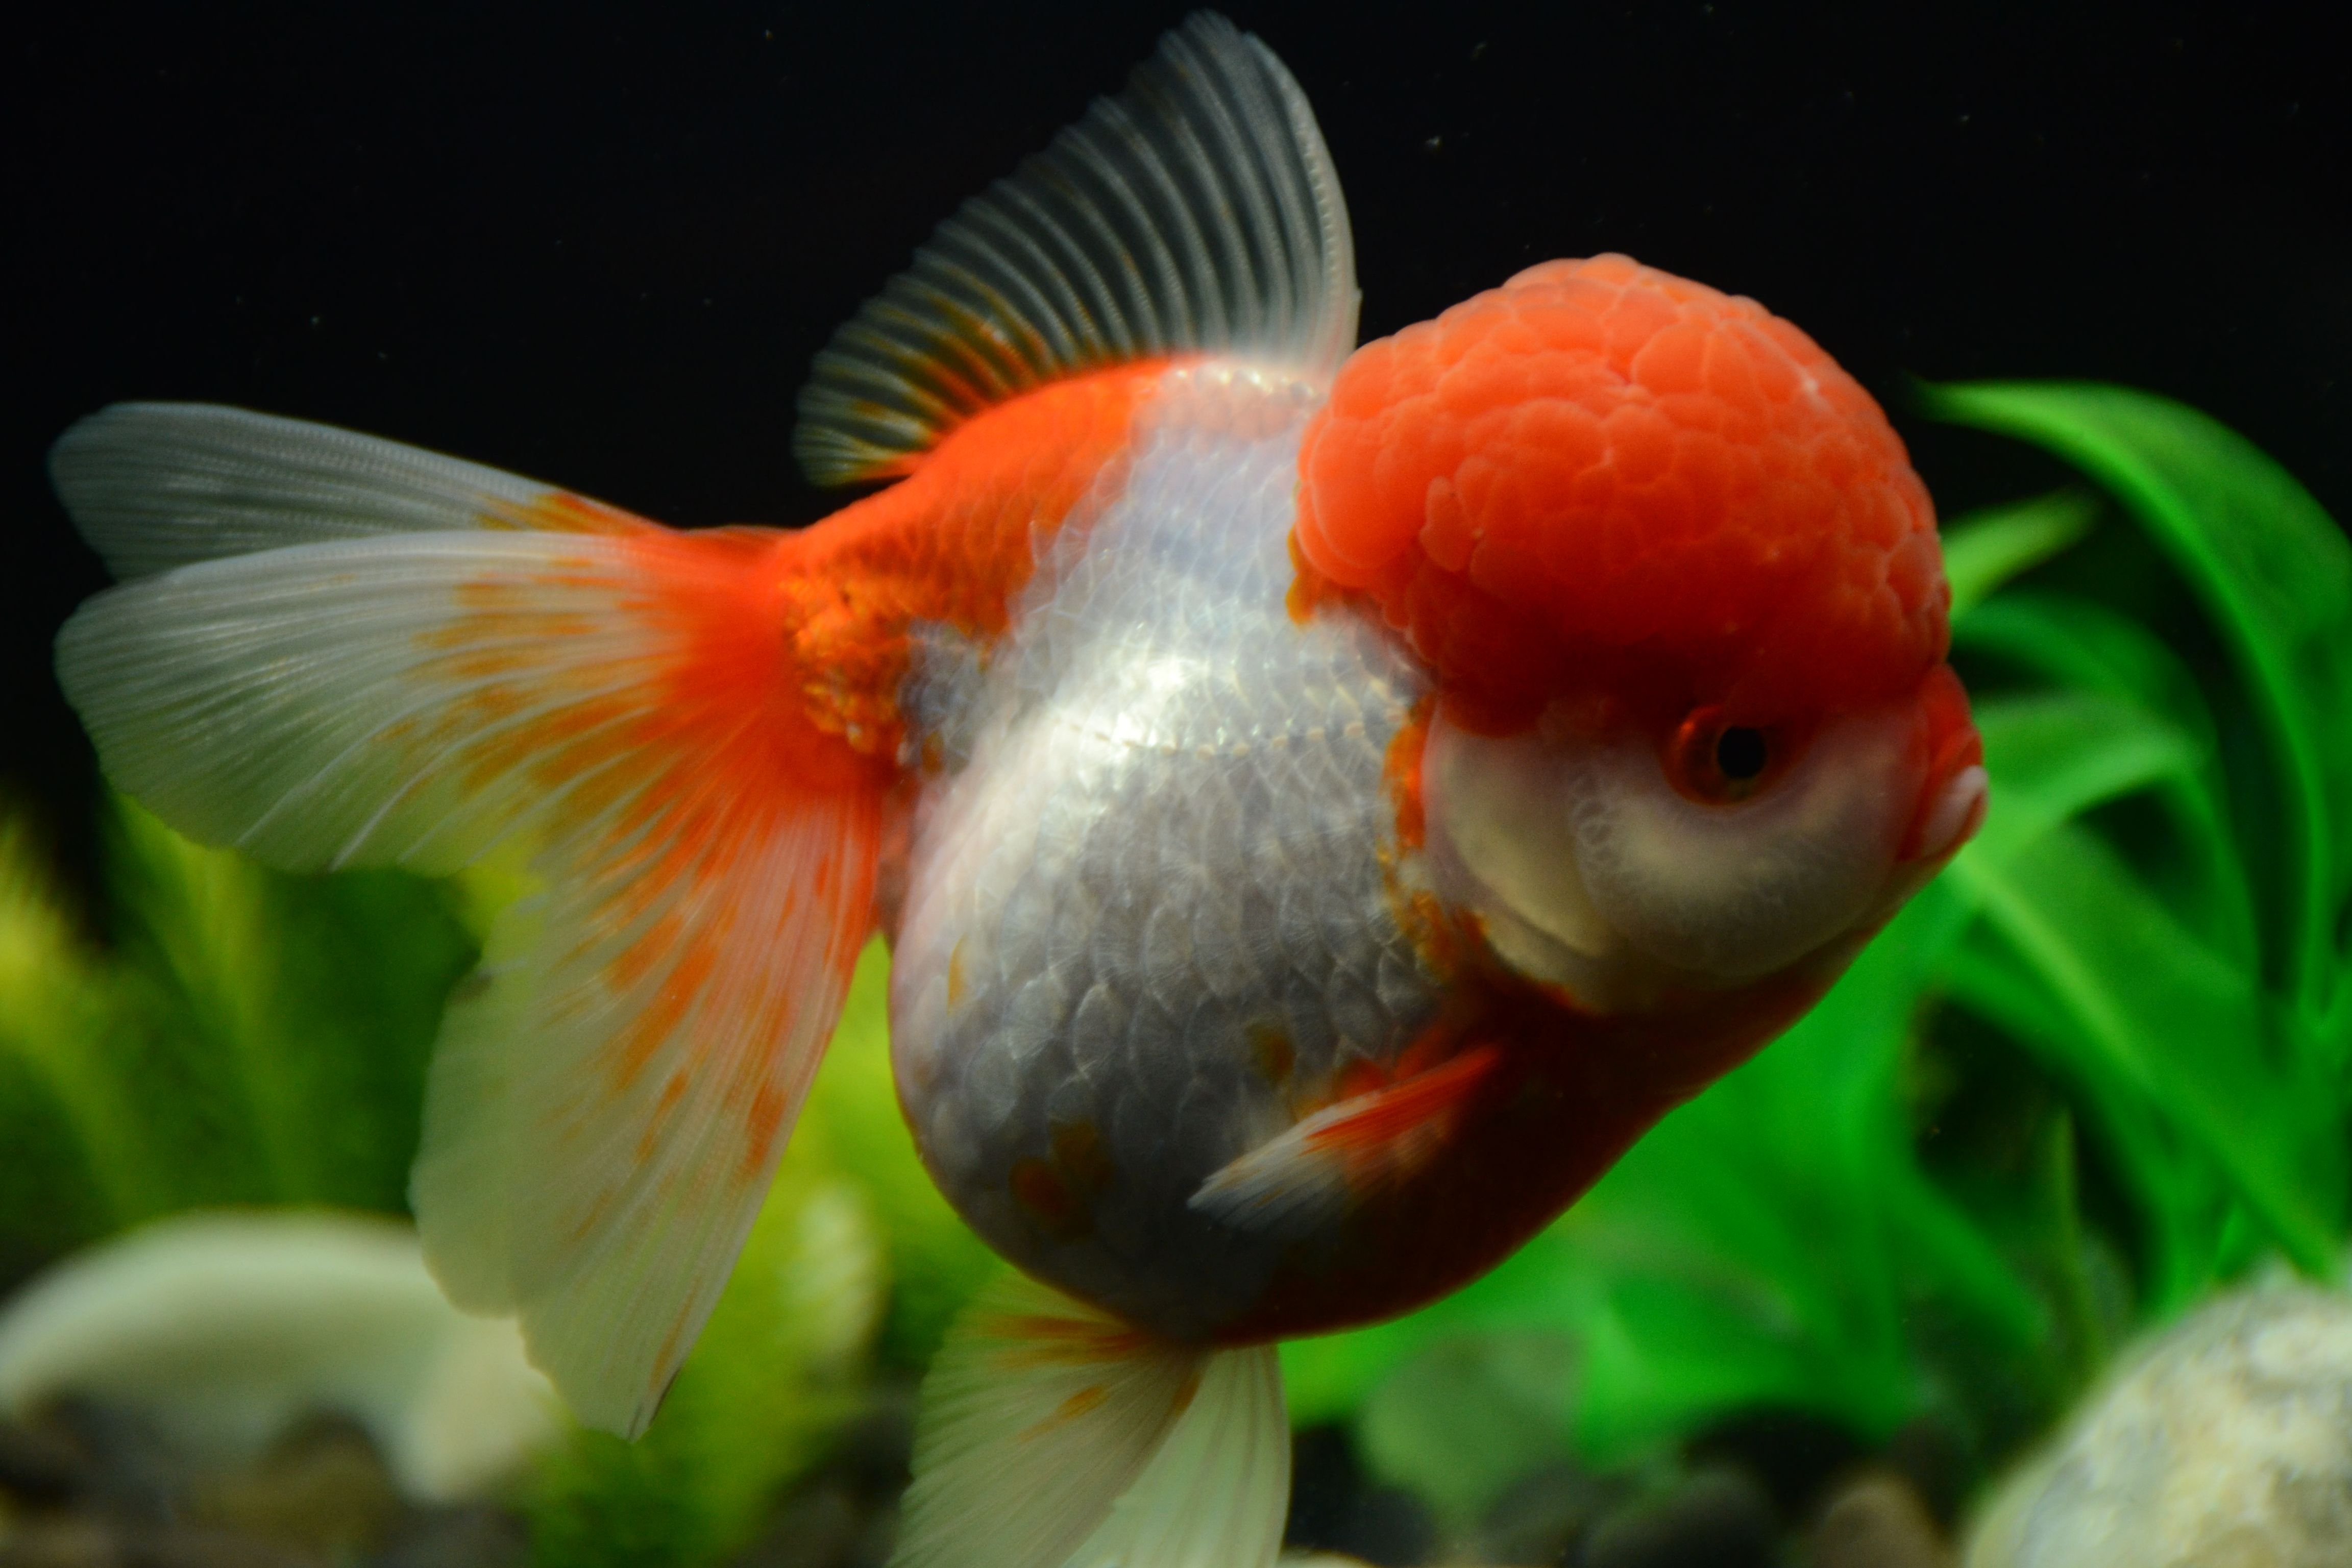 Goldfish For Sale Online All Pictures Are Taken By Windsor Fish Hatchery They Are Of The Exact Goldfish You Will Recei Goldfish For Sale Fish Hatchery Goldfish